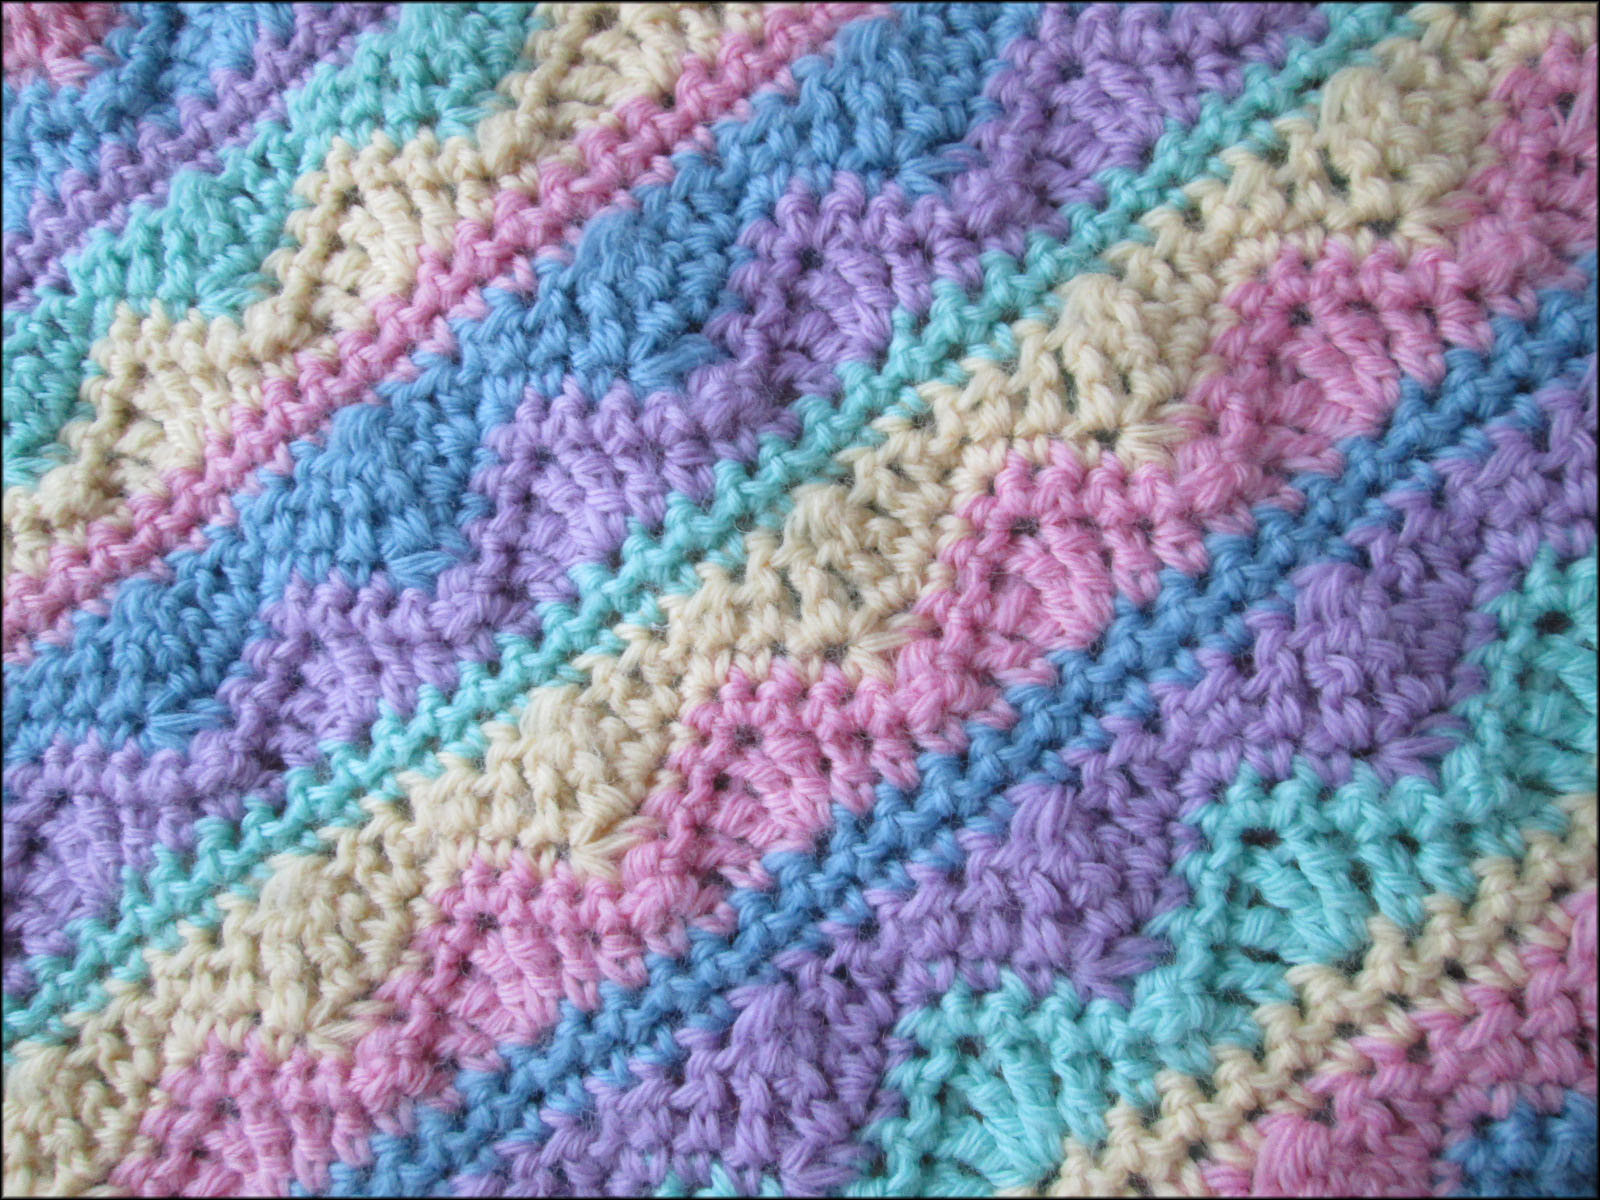 Crochet Throw Awesome Cute Stuff Inside at Last Of Luxury 41 Pics Crochet Throw